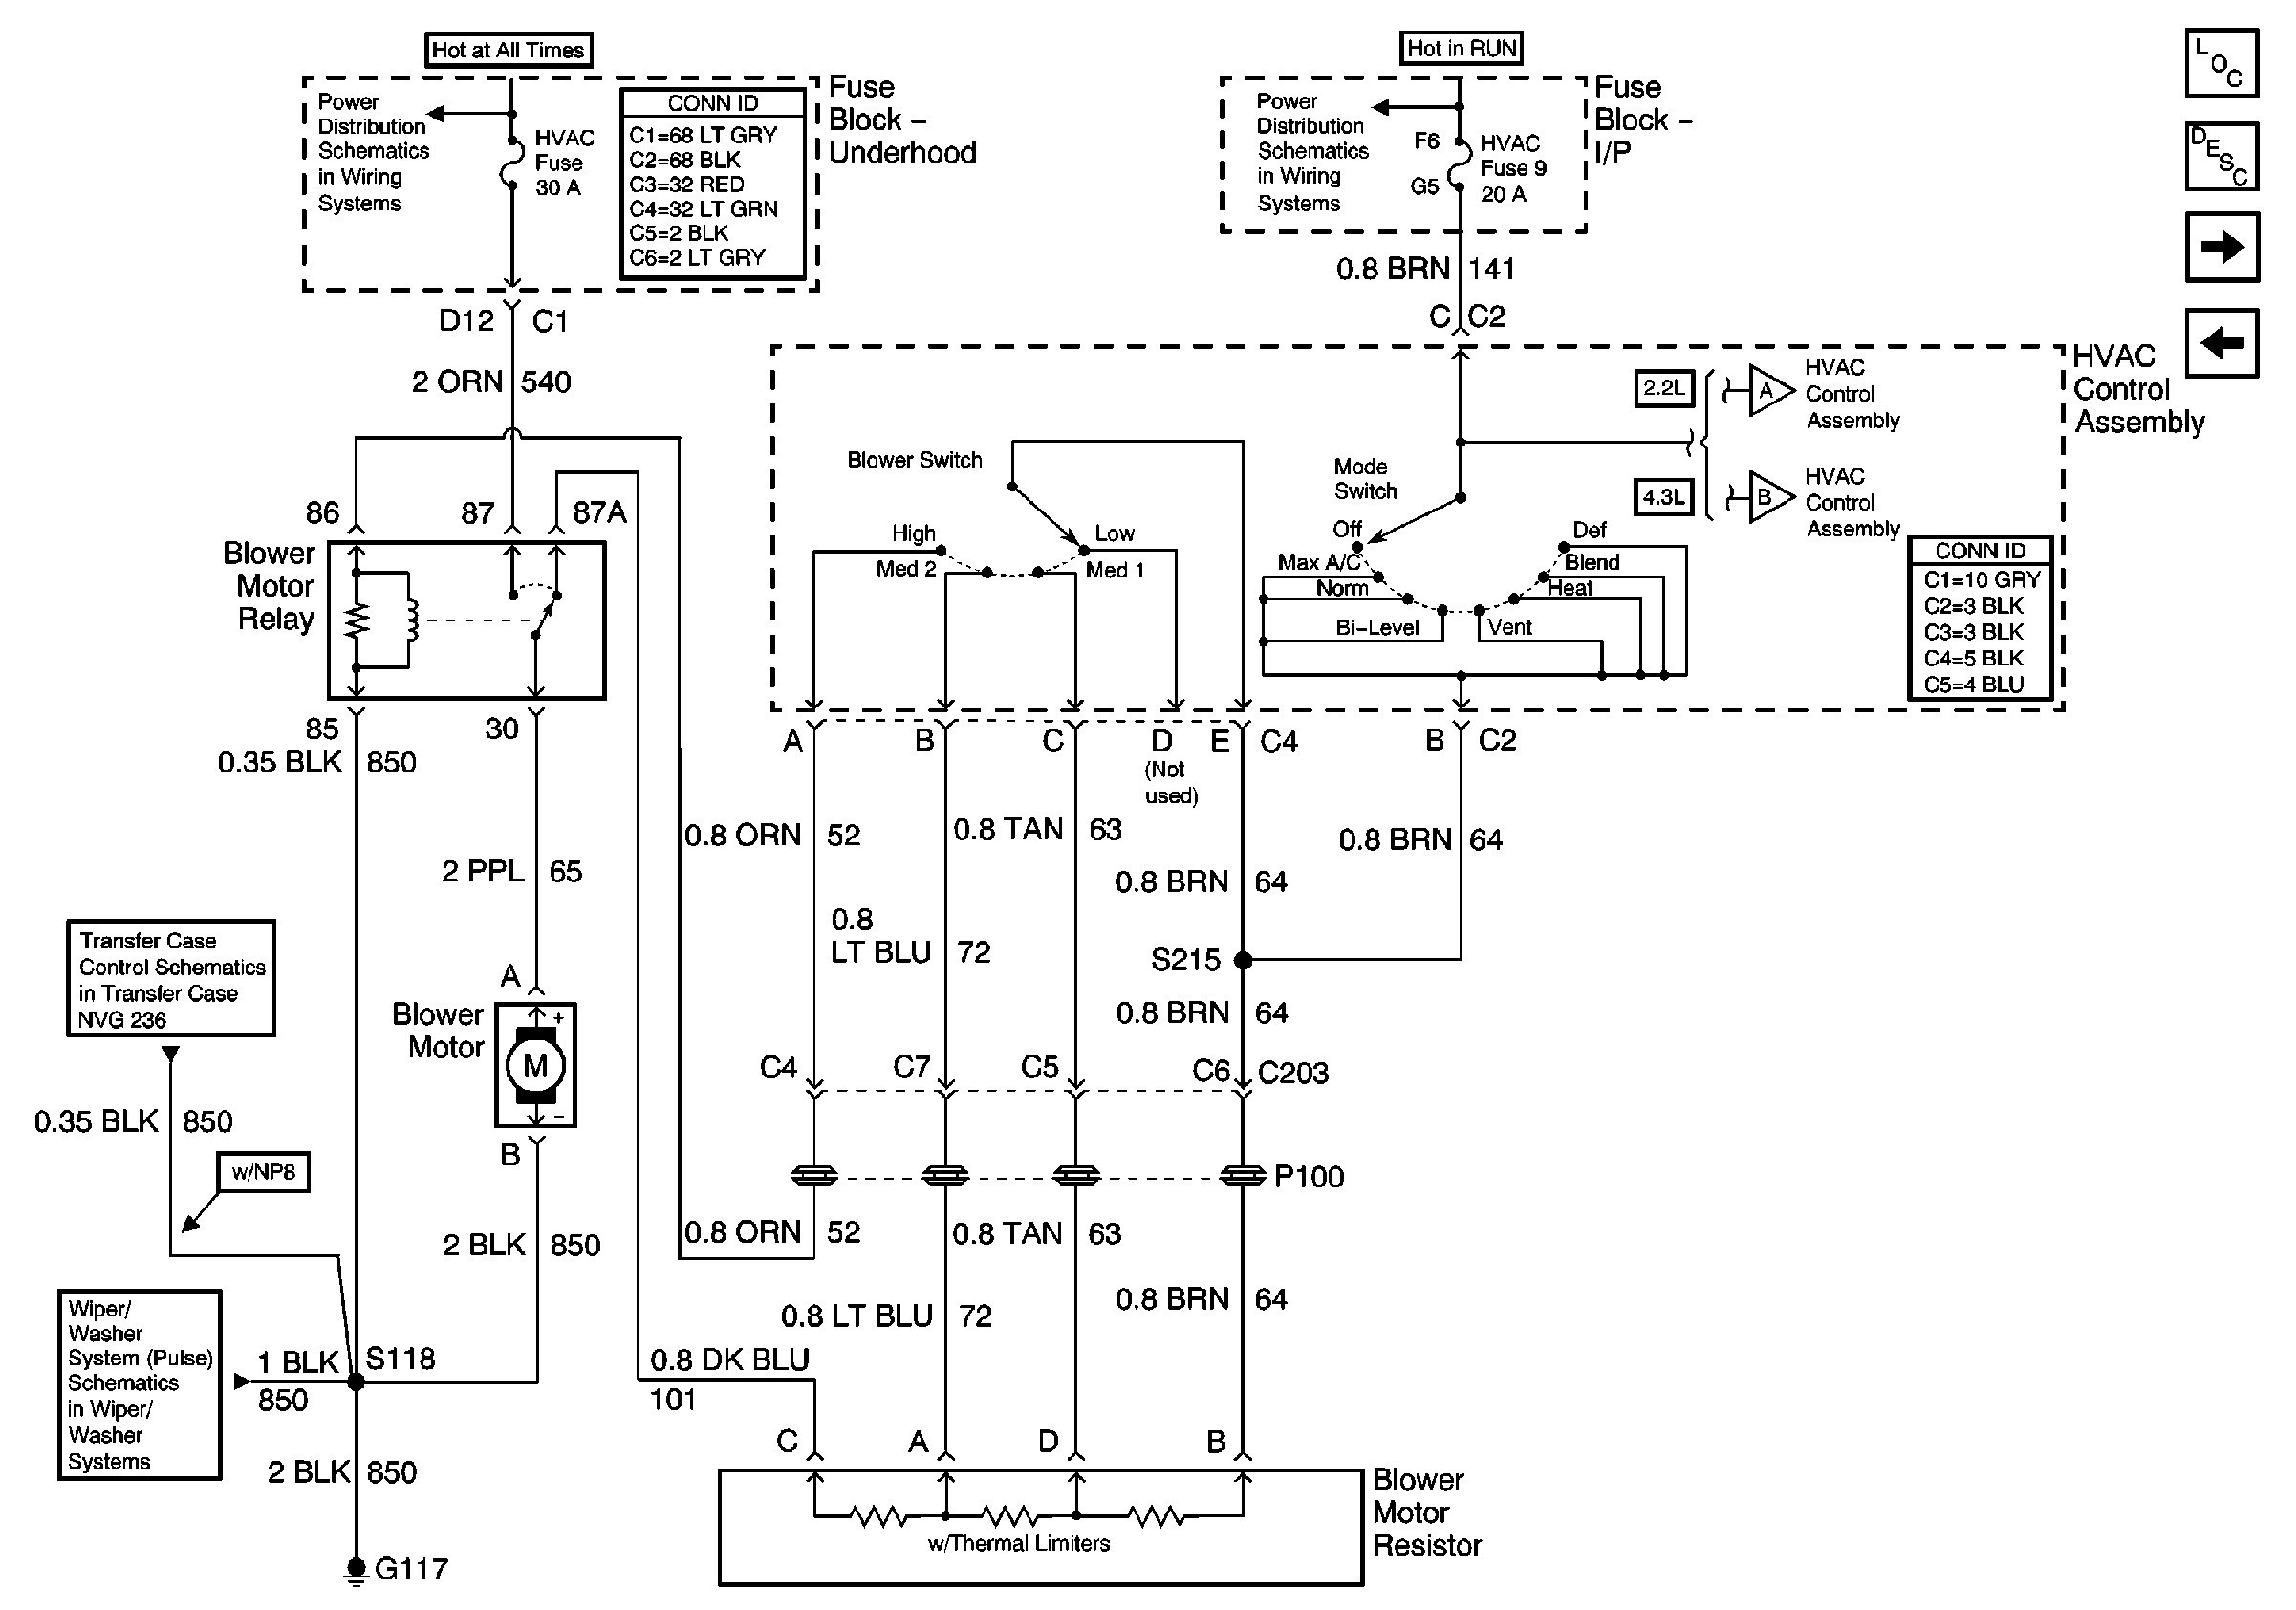 2000 Chevy S10 Engine Diagram 91 S10 Wiring Diagram Pdf Layout Wiring Diagrams • Of 2000 Chevy S10 Engine Diagram